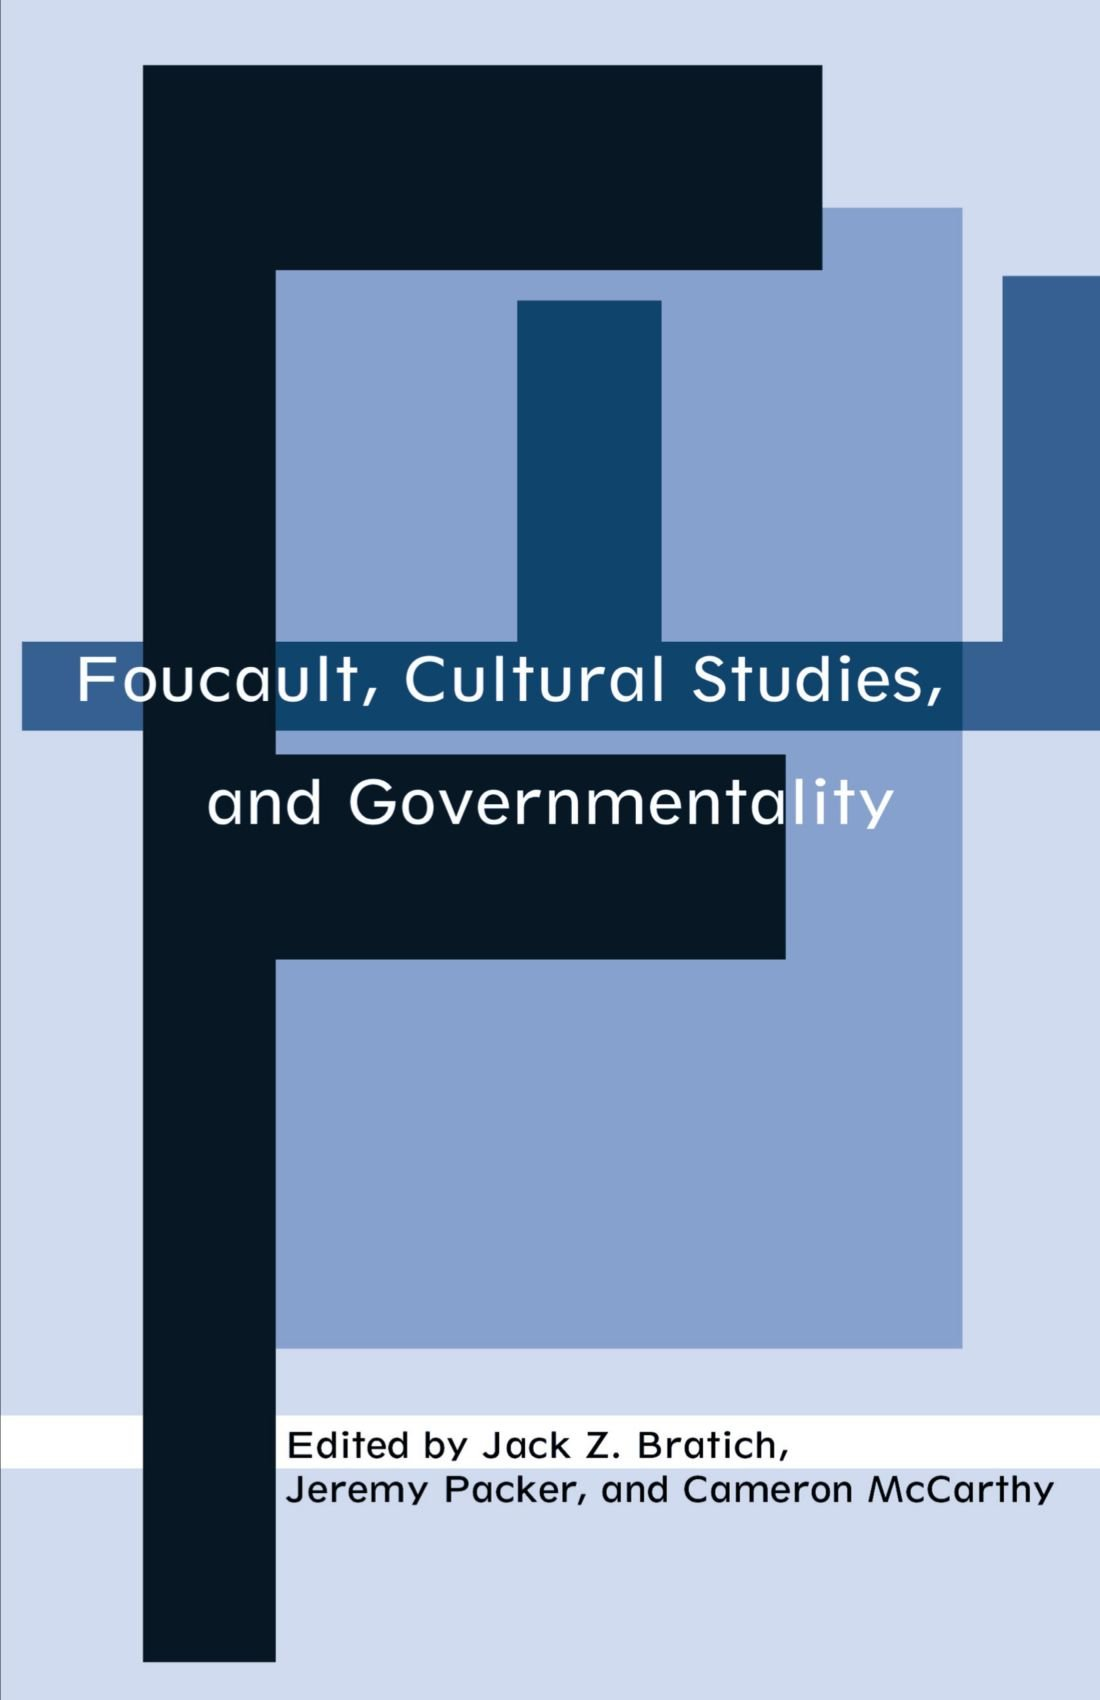 foucault cultural studies and governmentality jack z bratich foucault cultural studies and governmentality jack z bratich jeremy packer cameron mccarthy 9780791456644 com books